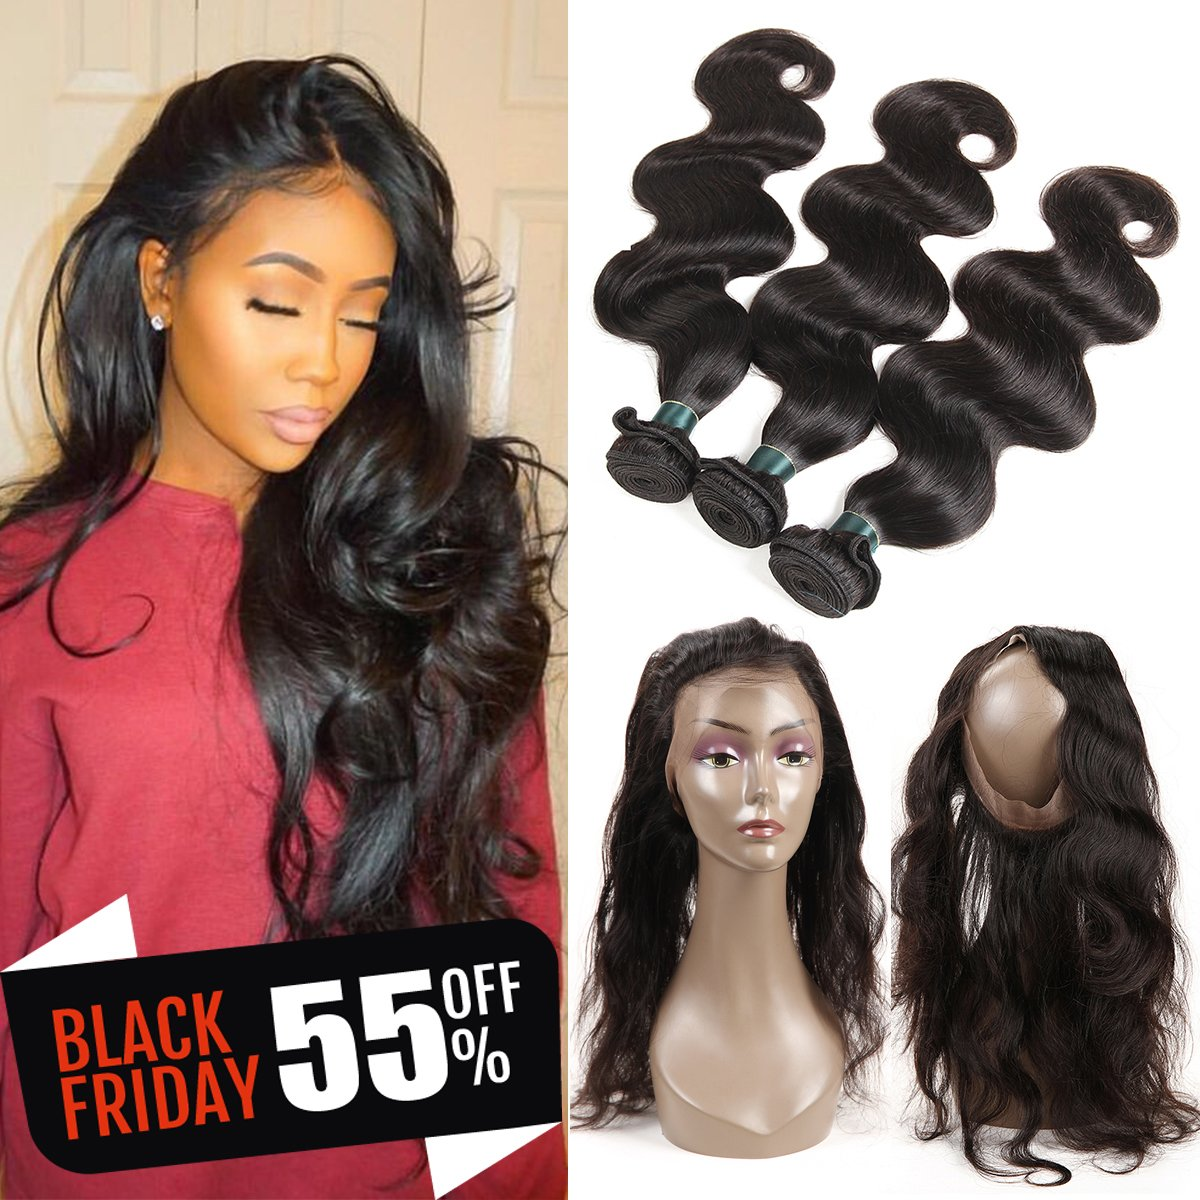 360 Lace Frontal with Bundles Pre Plucked 8A Brazilian Body Wave Virgin Hair Bunldes with 360 Lace Frontal Closure 3 Bundles brazilian hair with frontal Baby Hair (18 20 22+16 360Frontal) by Ashimary (Image #1)